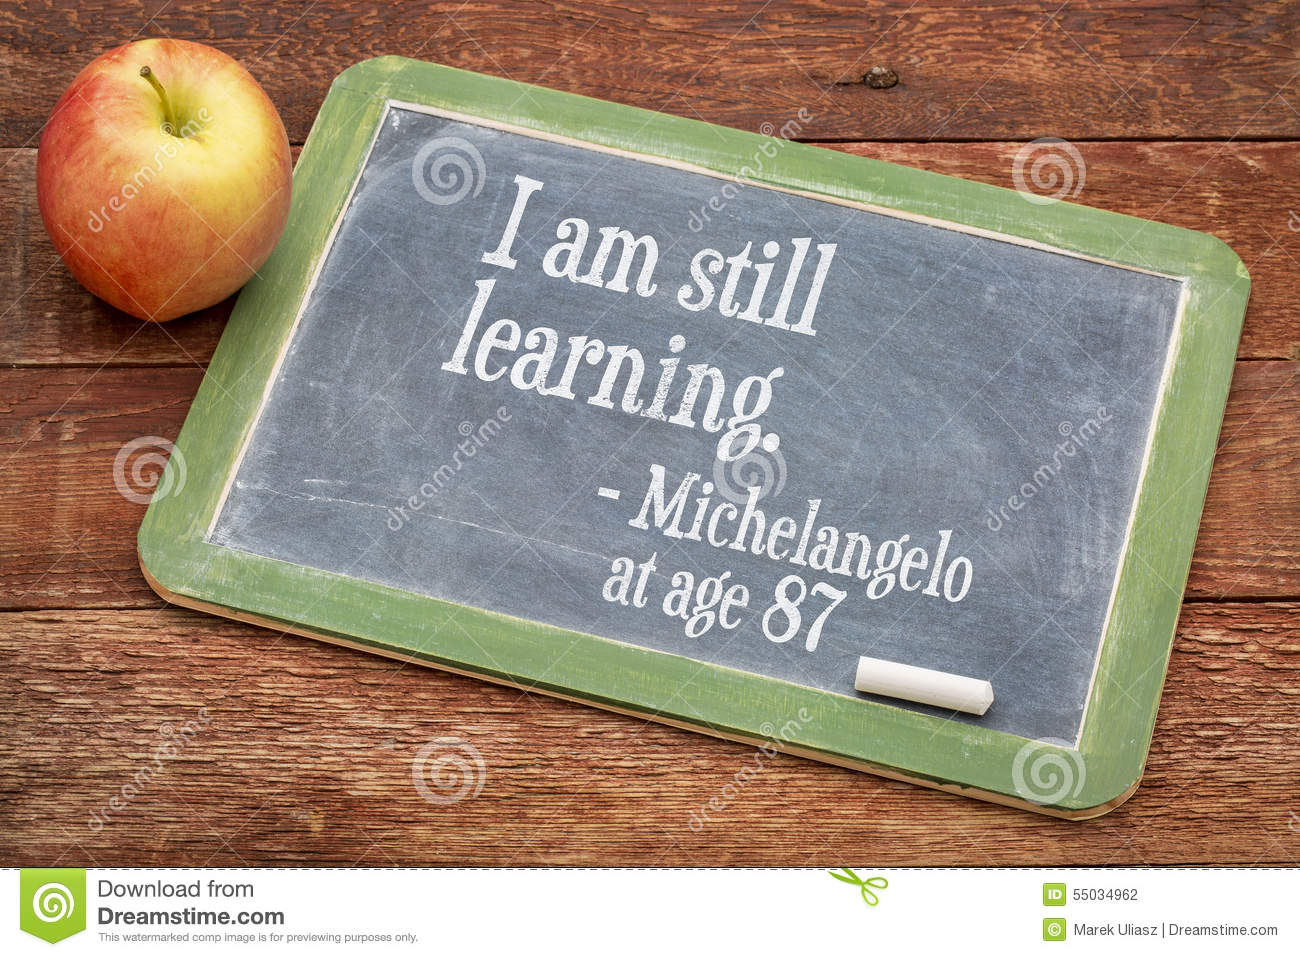 I am still learning - continuous education